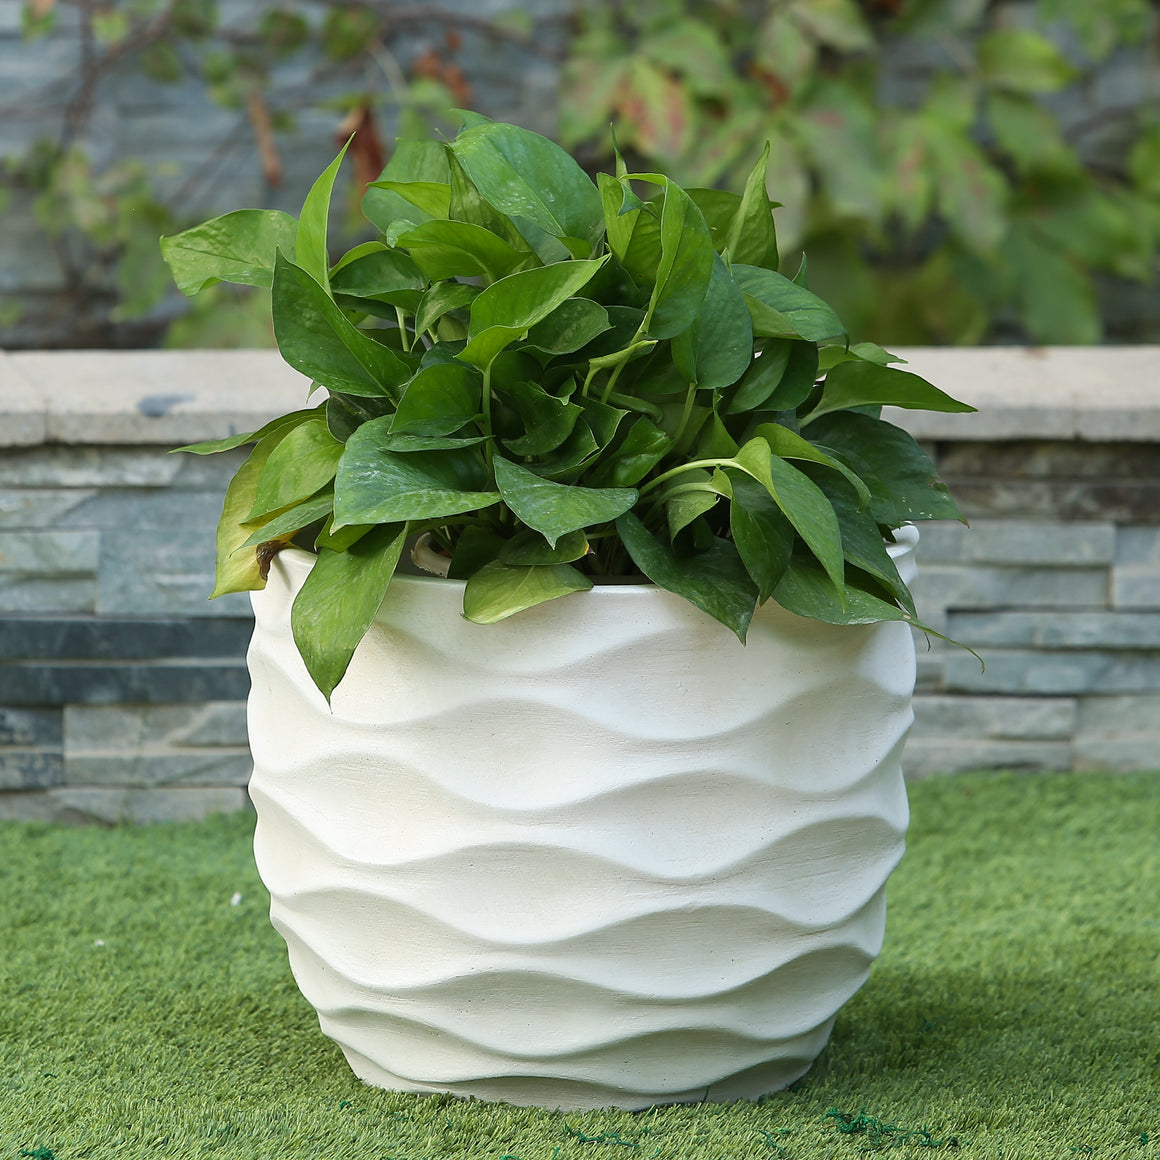 White Wavy Design Planter shown on green lawn filled with green plants